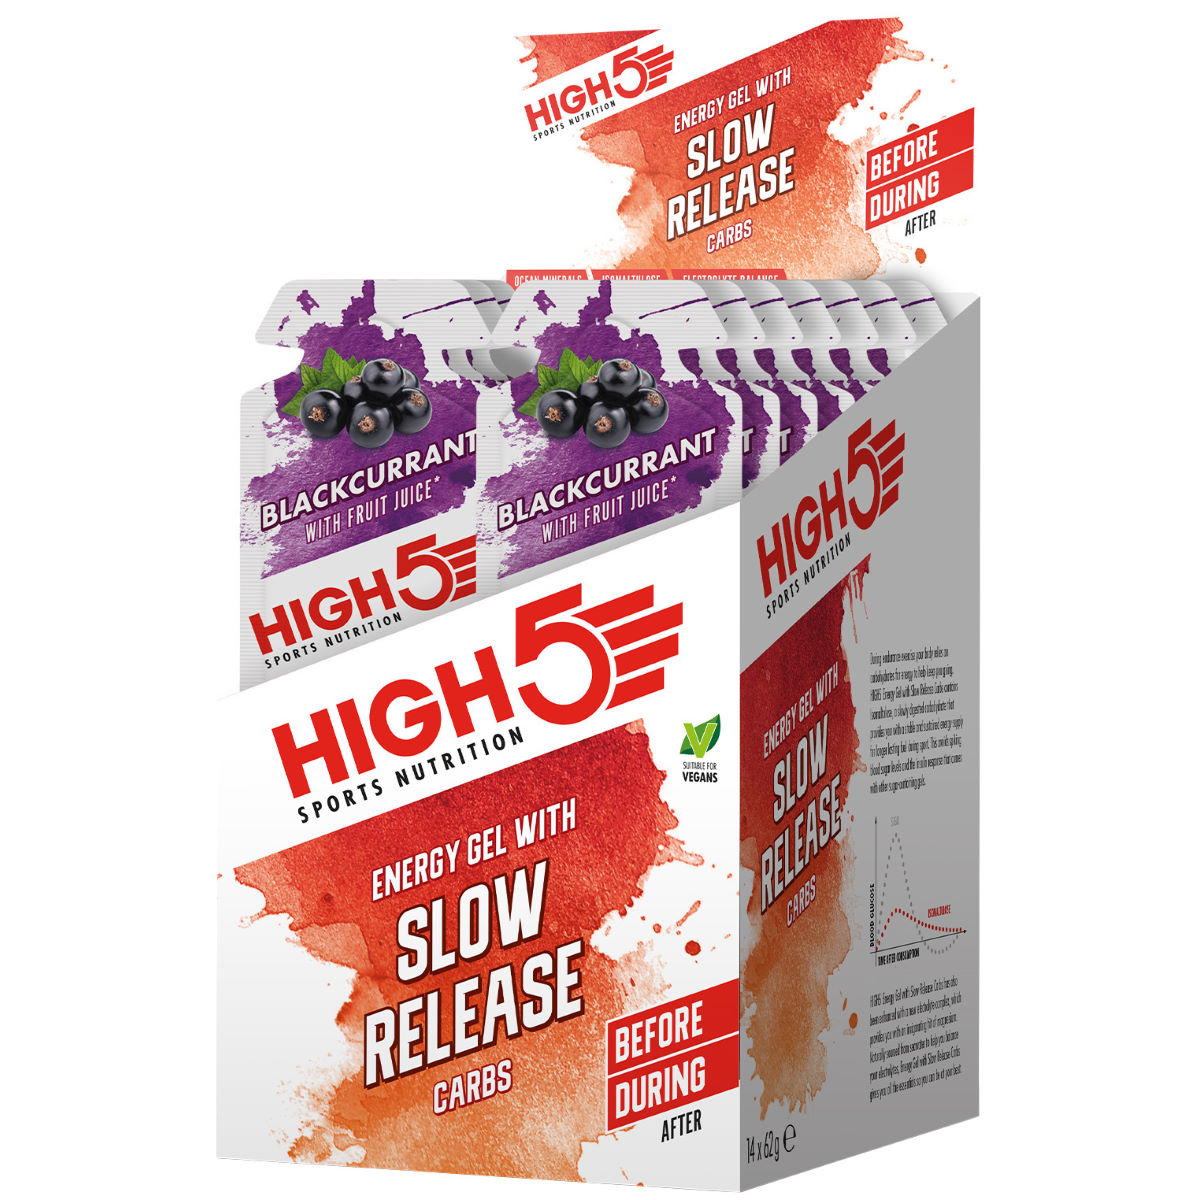 HIGH5 HIGH5 Energy Gel with Slow Release Carbs (14 x 62g)   Gels